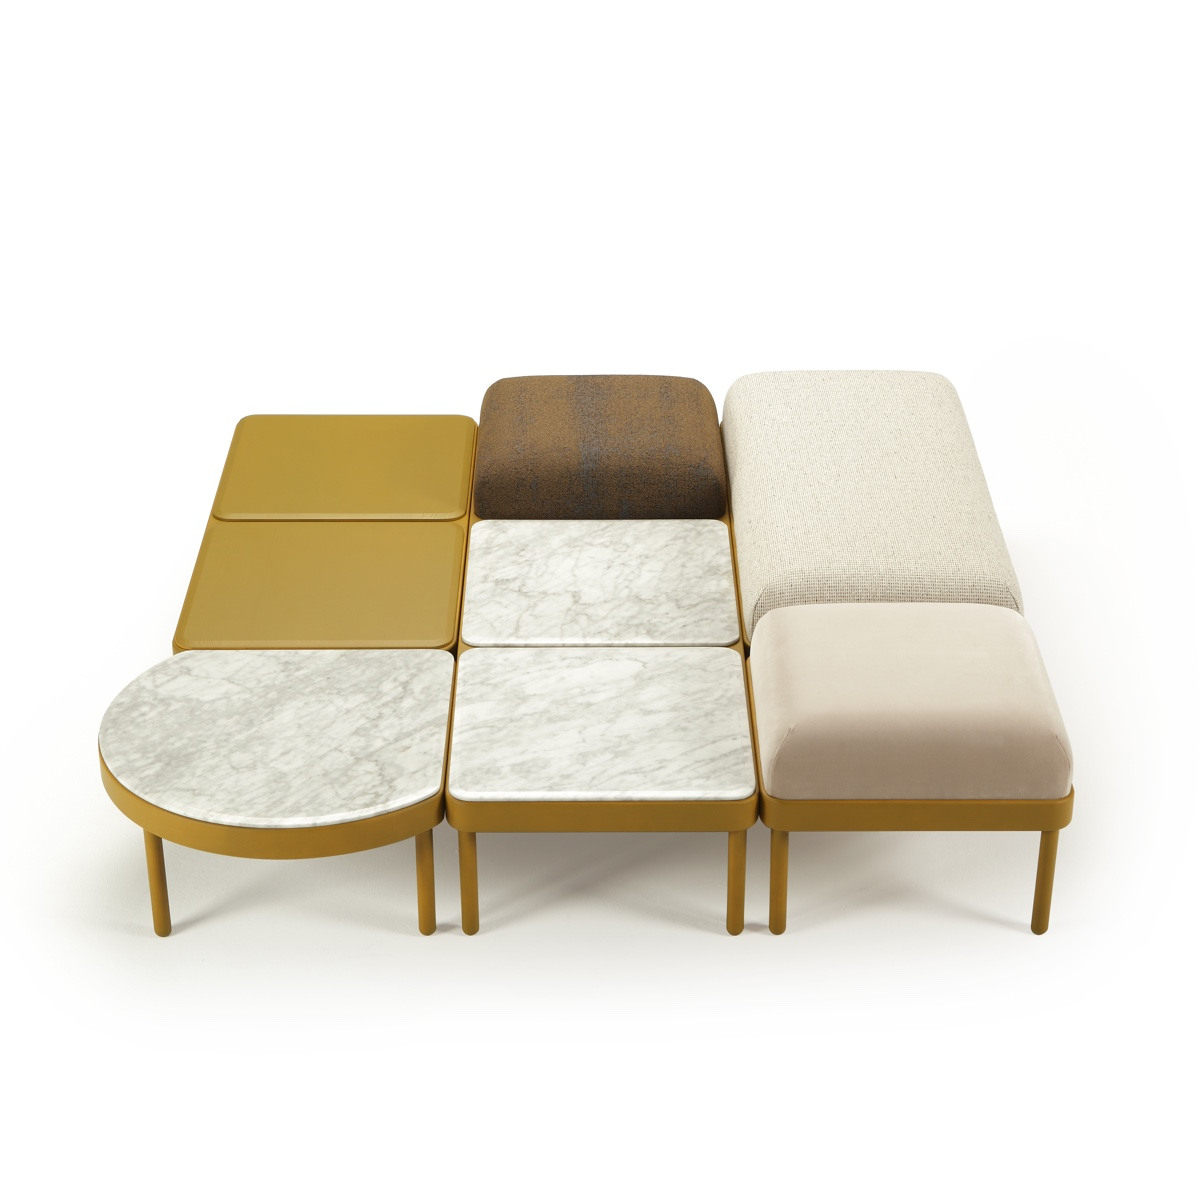 Mosaico by design studio Yonoh for Sancal.